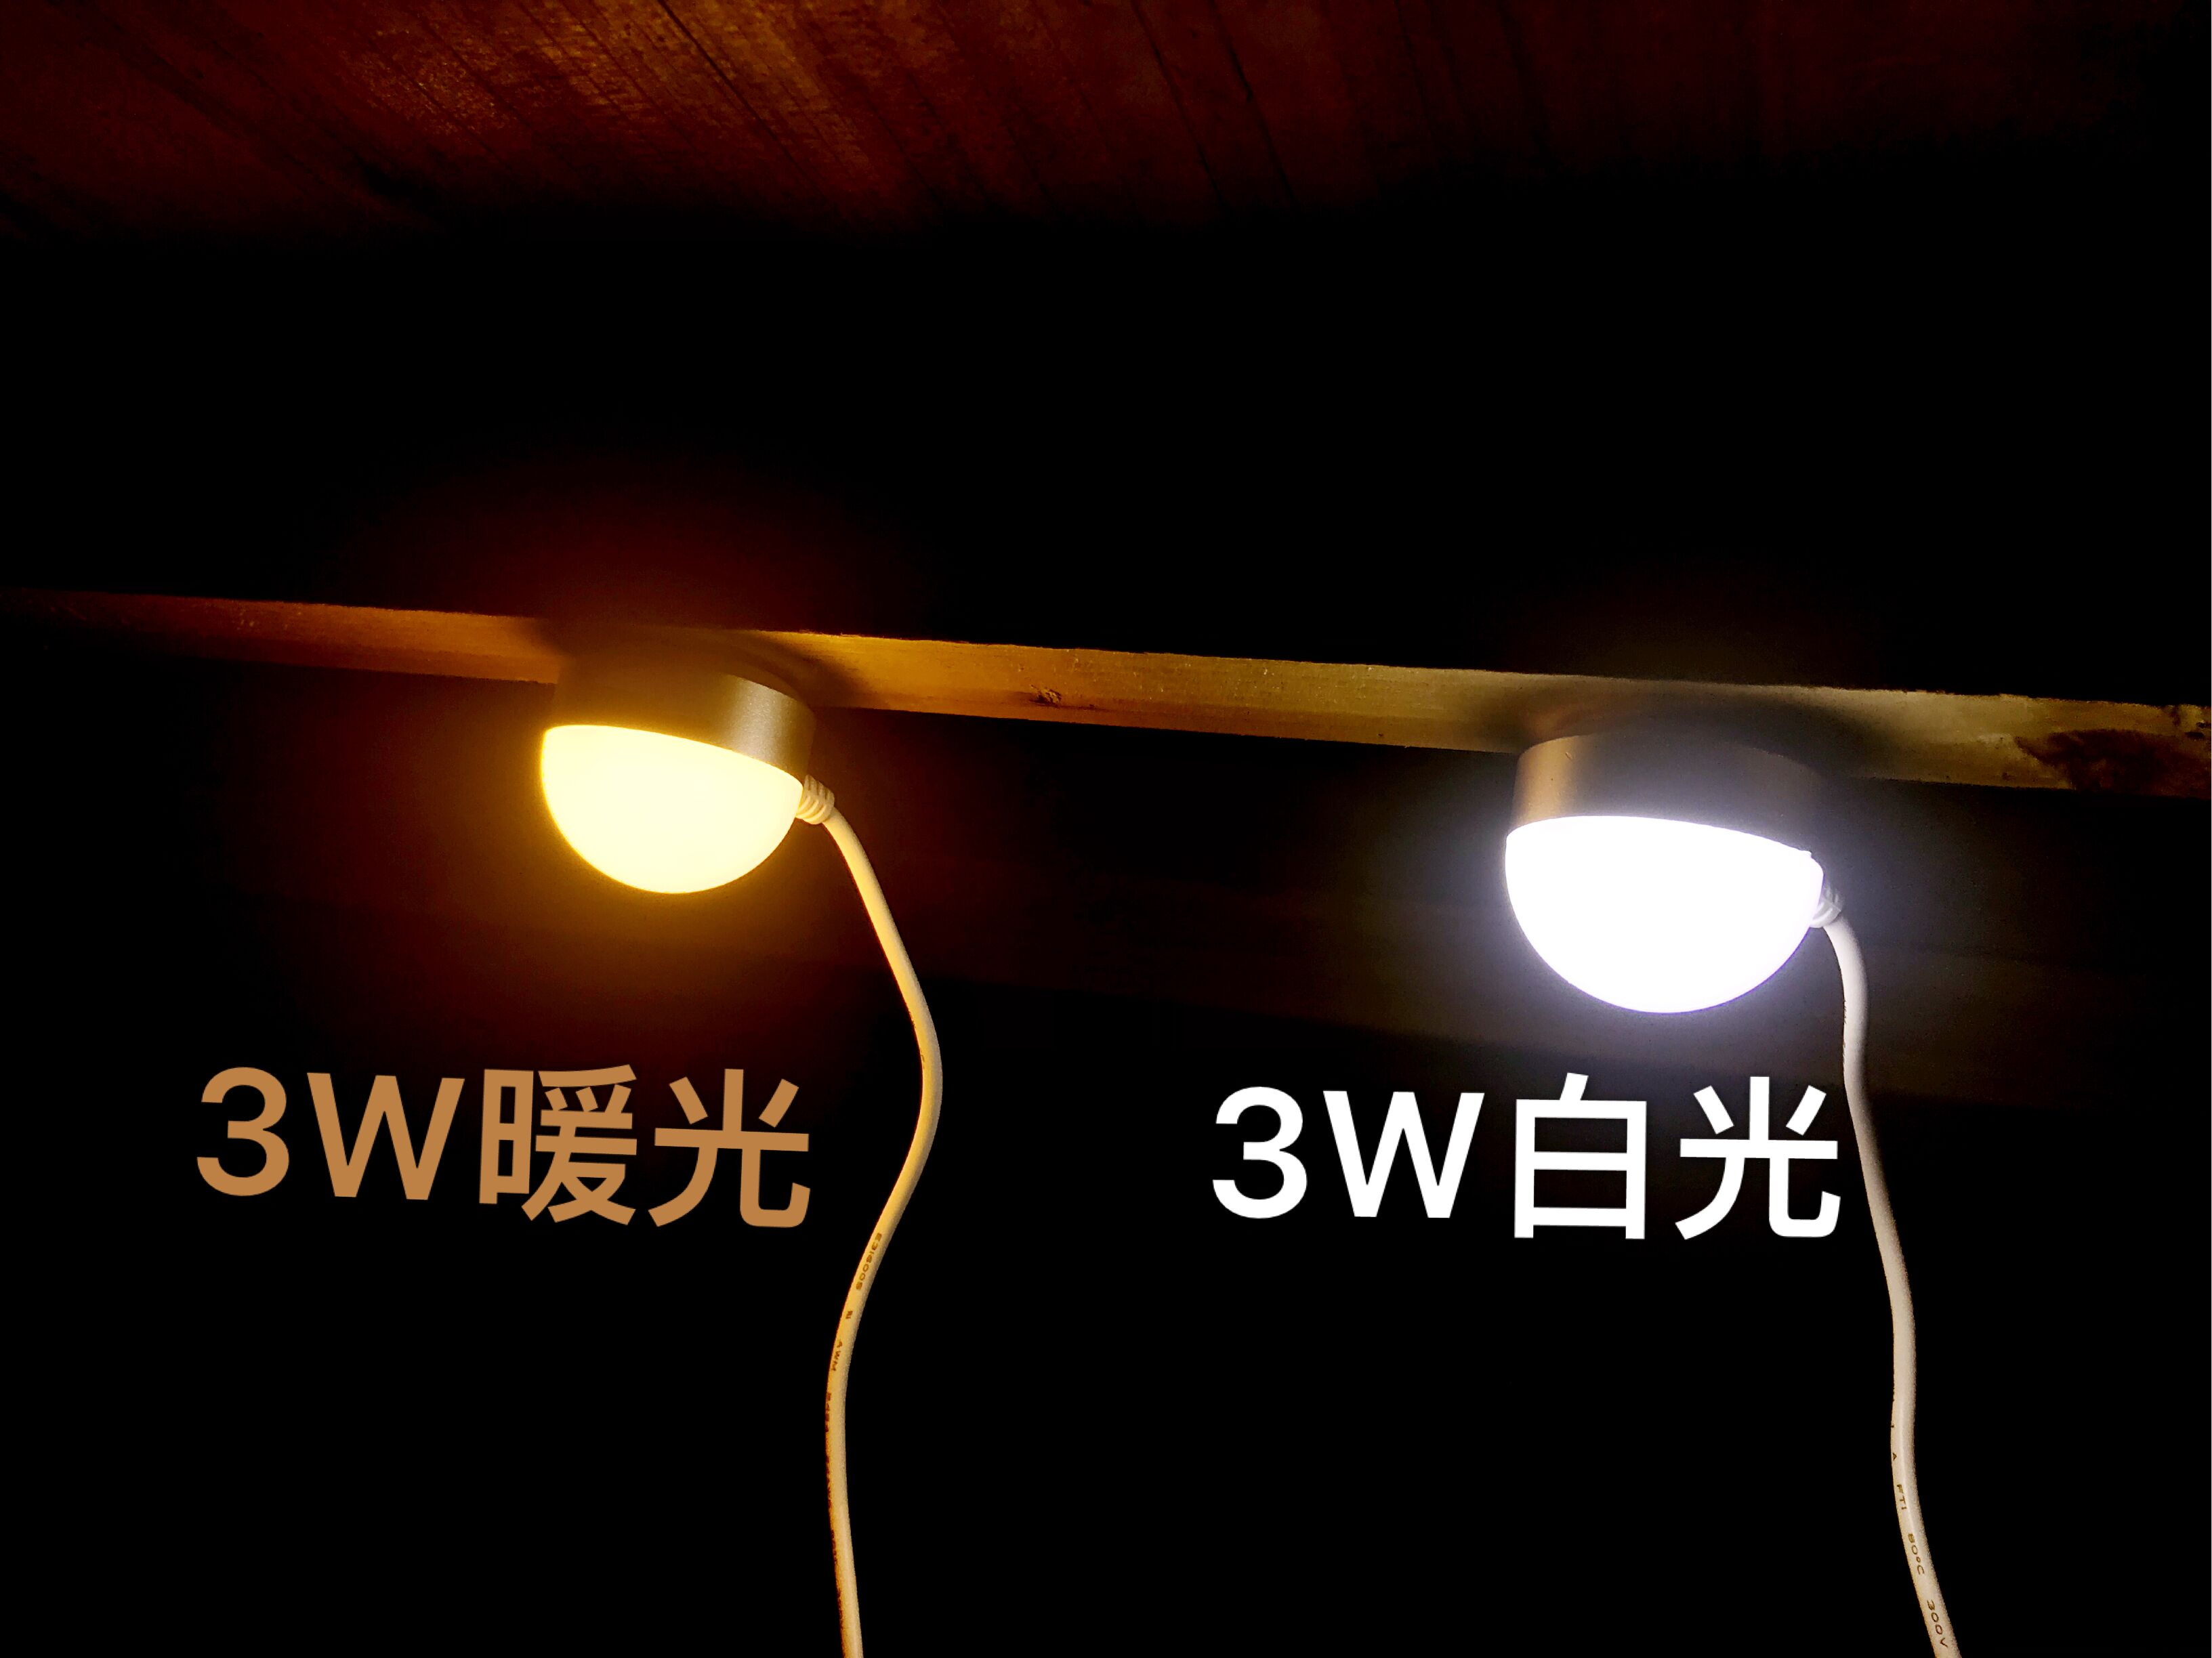 3 86 3w Strong Light Mini Usb Lamp With Switch Creative Led Ceiling Lamp Eye Protection Desk Lamp Small Night Lamp For College Students Dormitory From Best Taobao Agent Taobao International International Ecommerce Newbecca Com